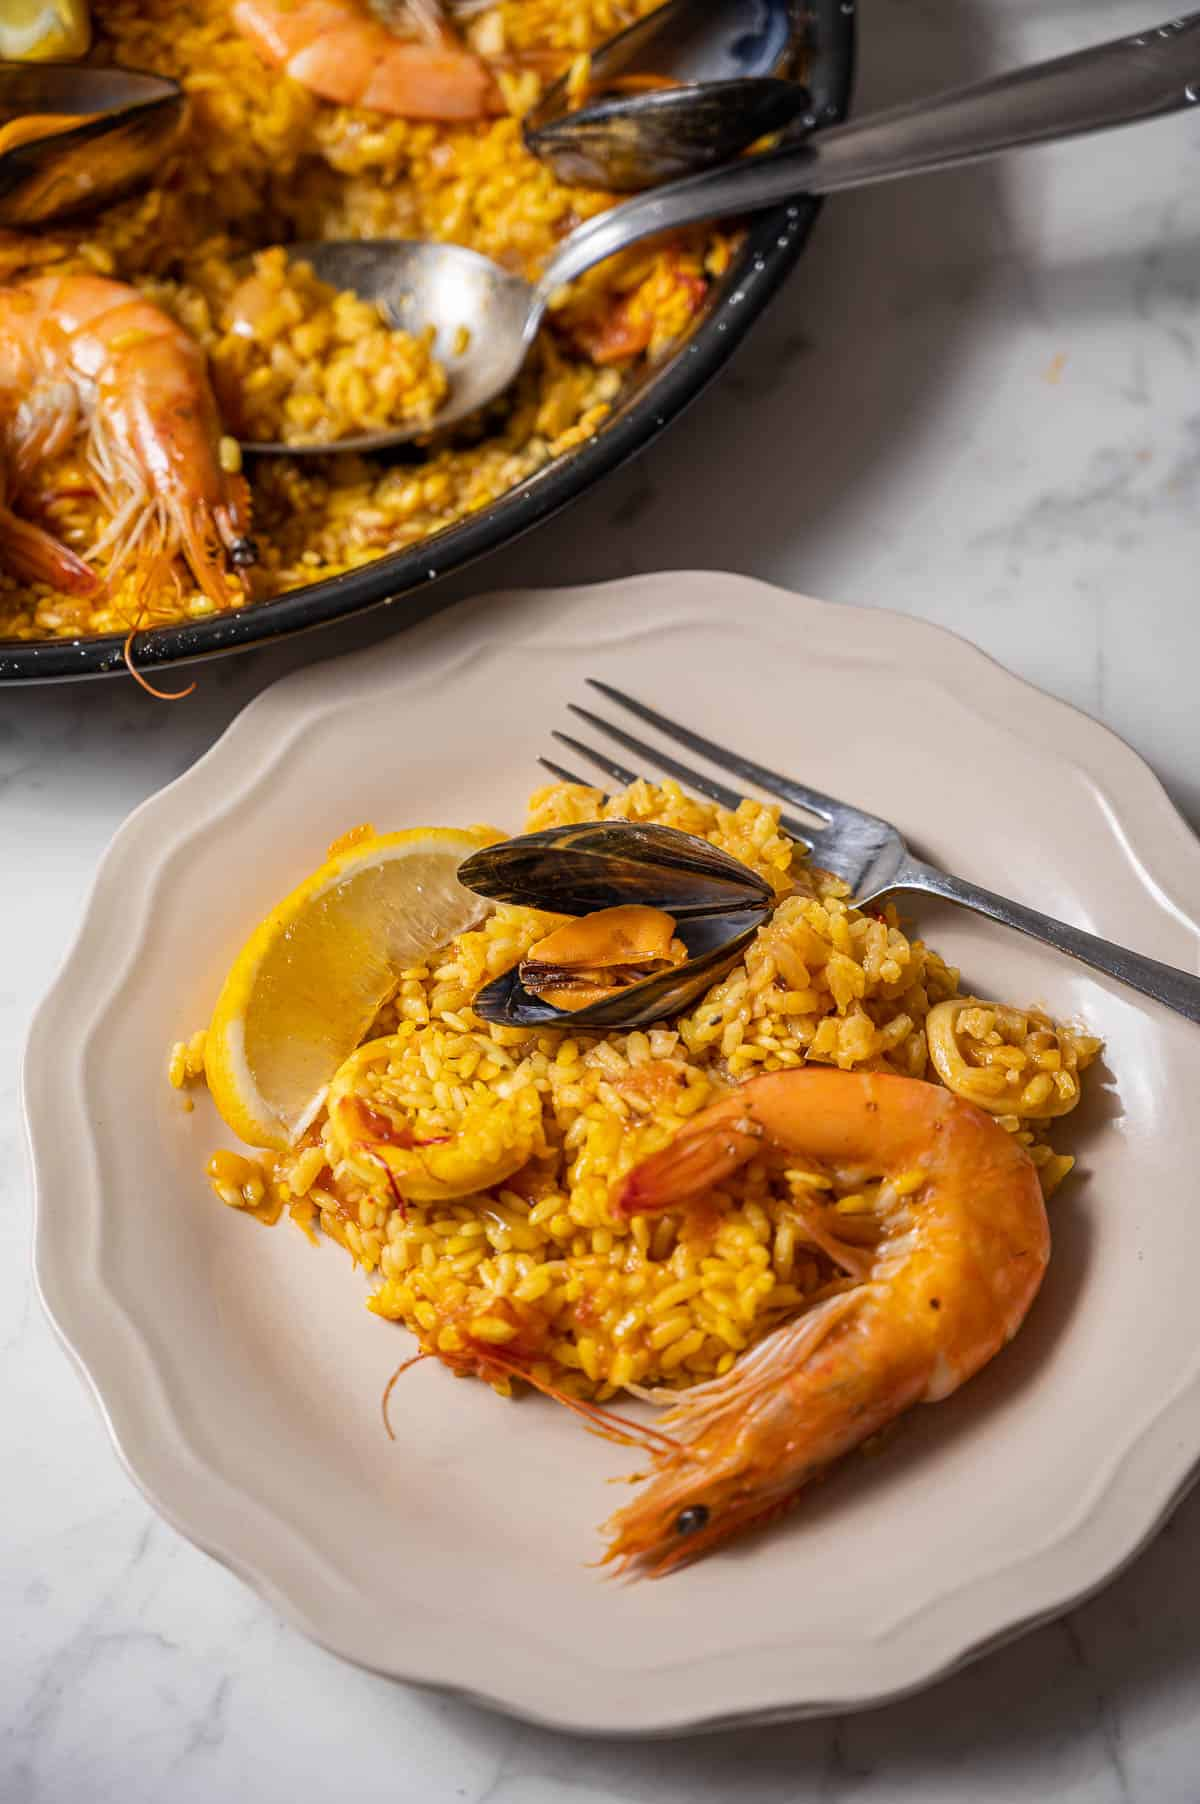 Serving of seafood paella on a white plate in front of the rest of the paella in the pan